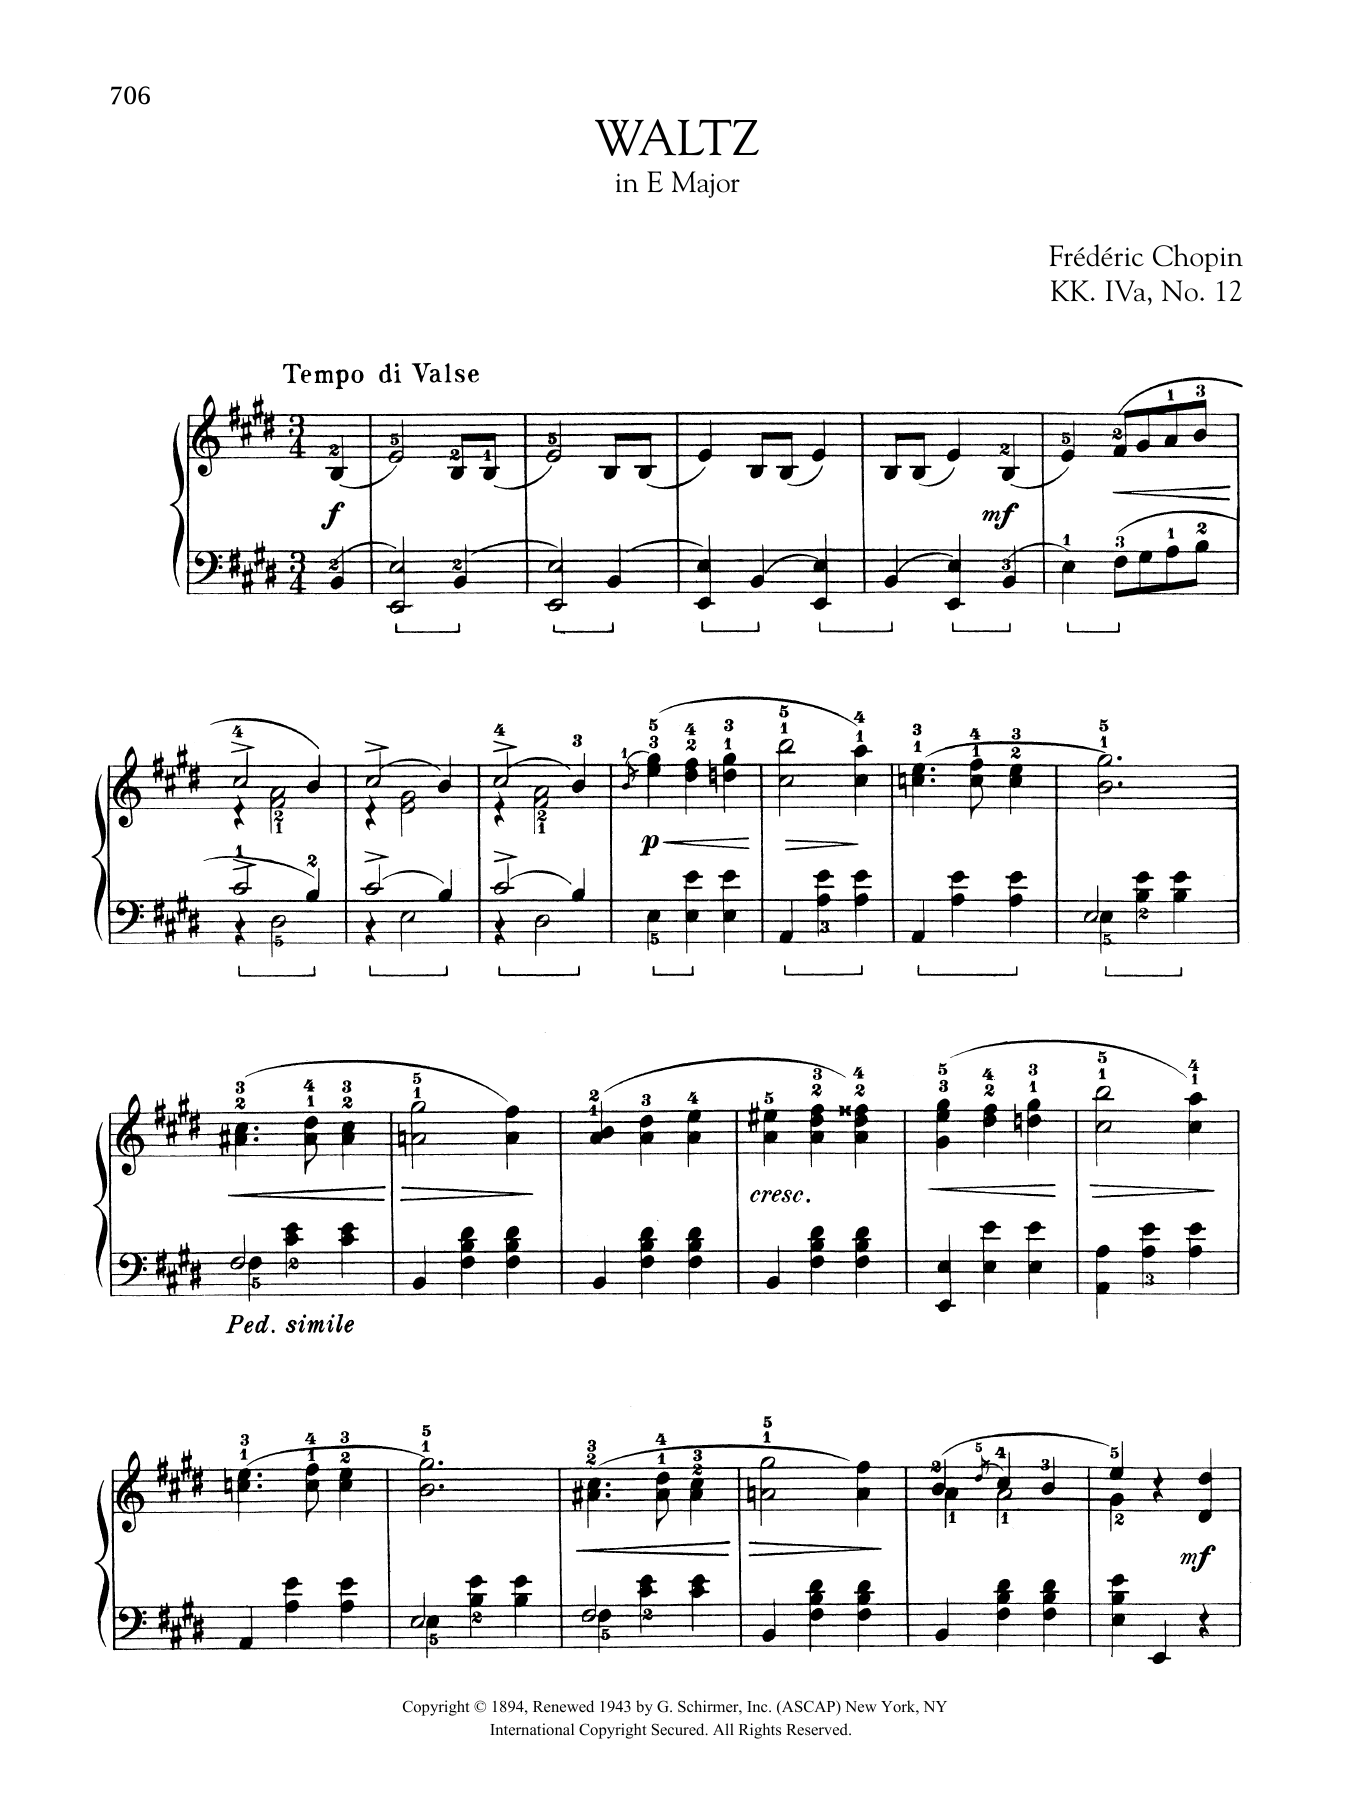 Waltz in E Major, KK. IVa, No. 12 Sheet Music